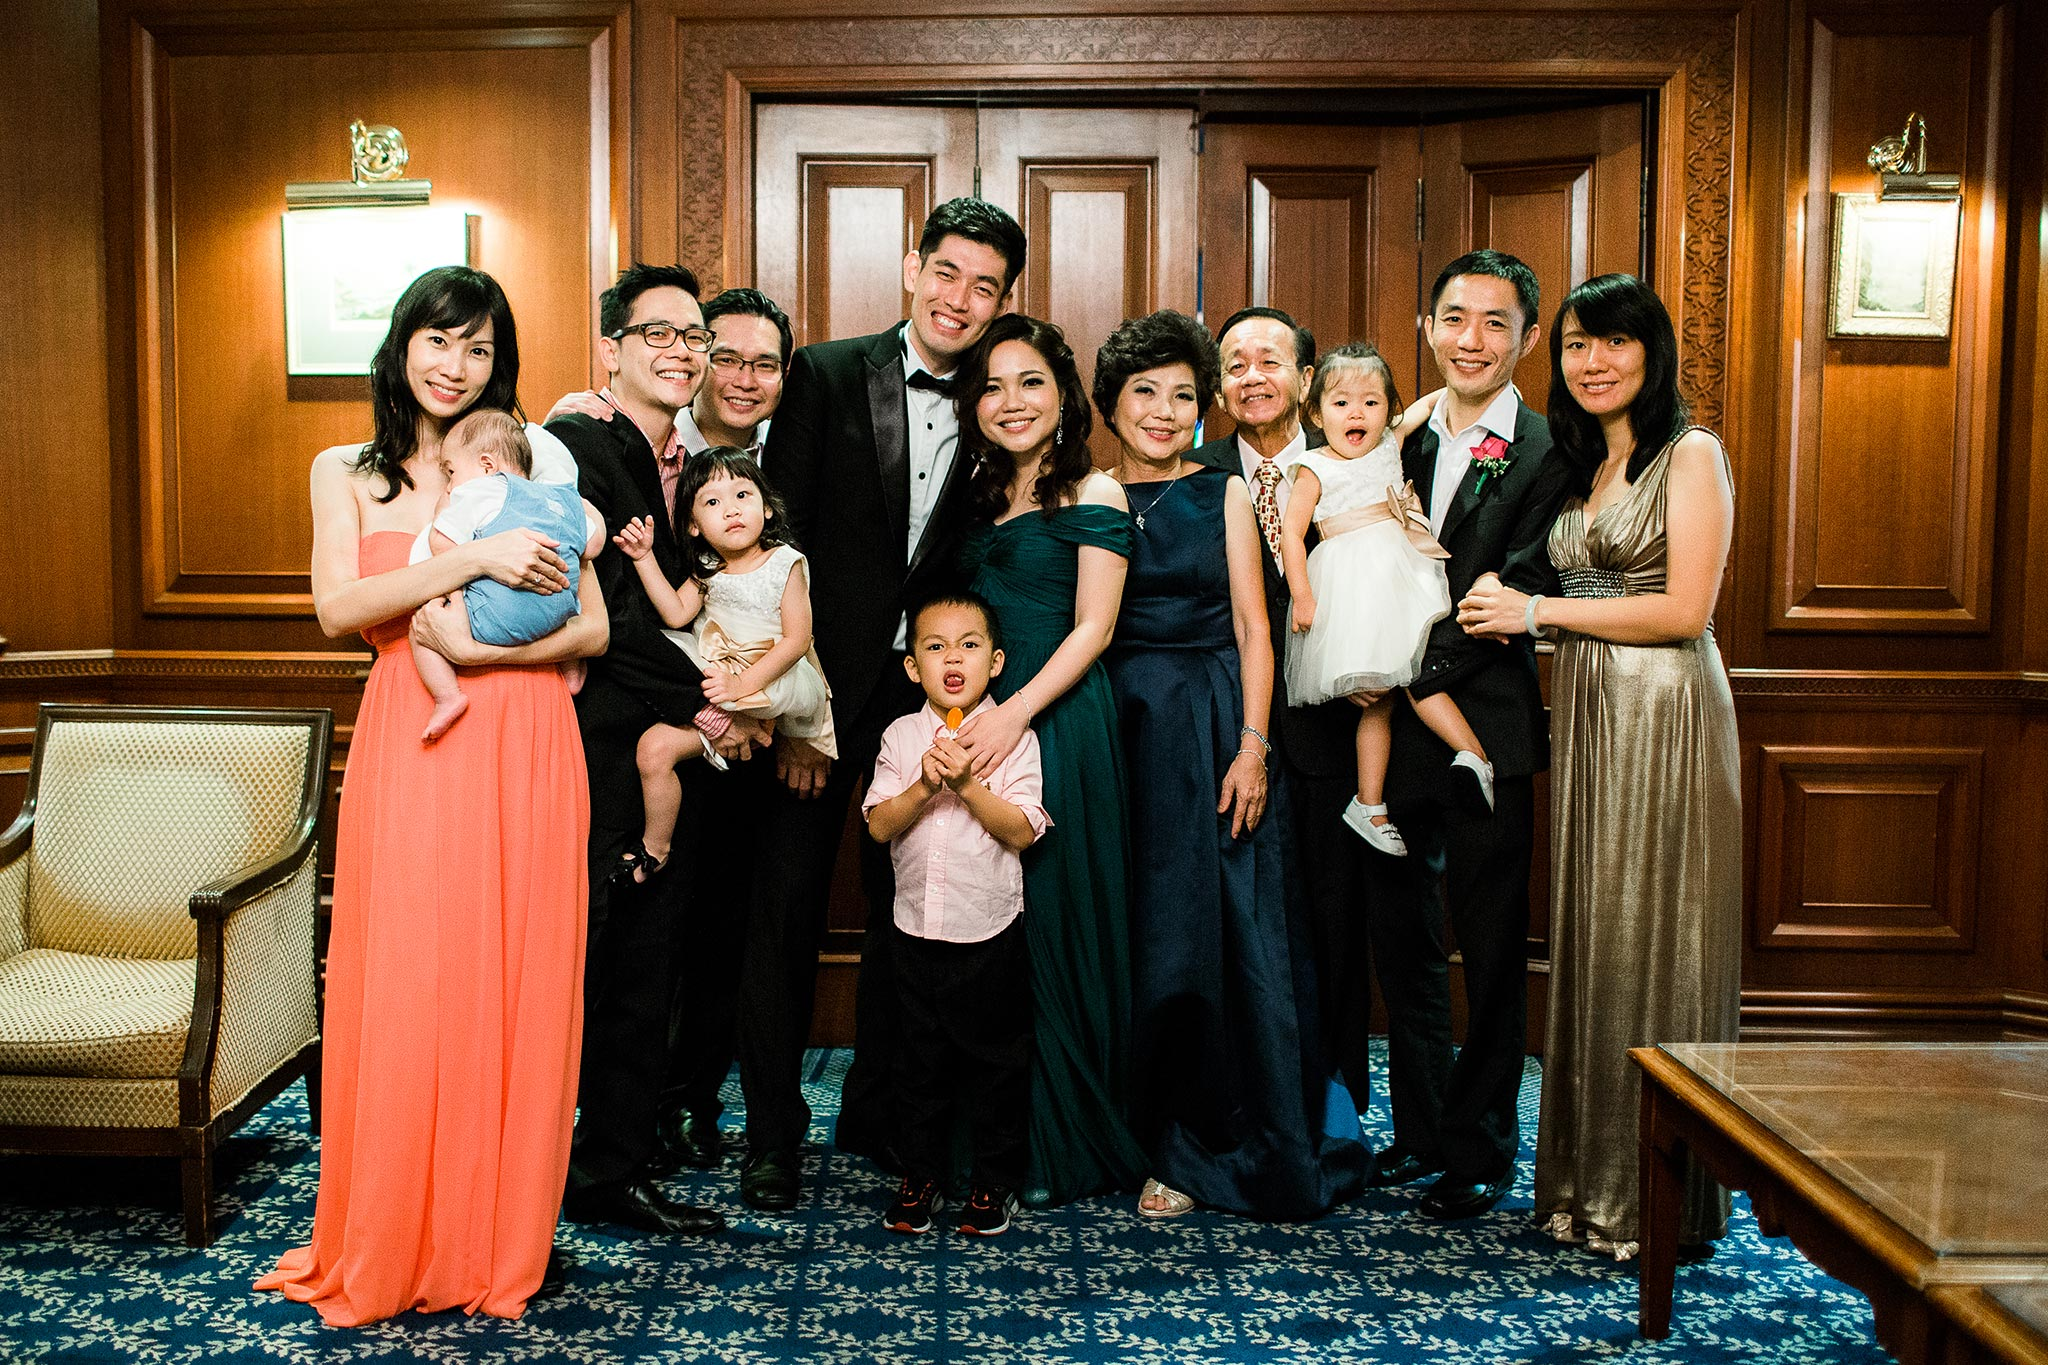 Bankers-Club-Kuala-Lumpur-Wedding-dinner-family-portrait